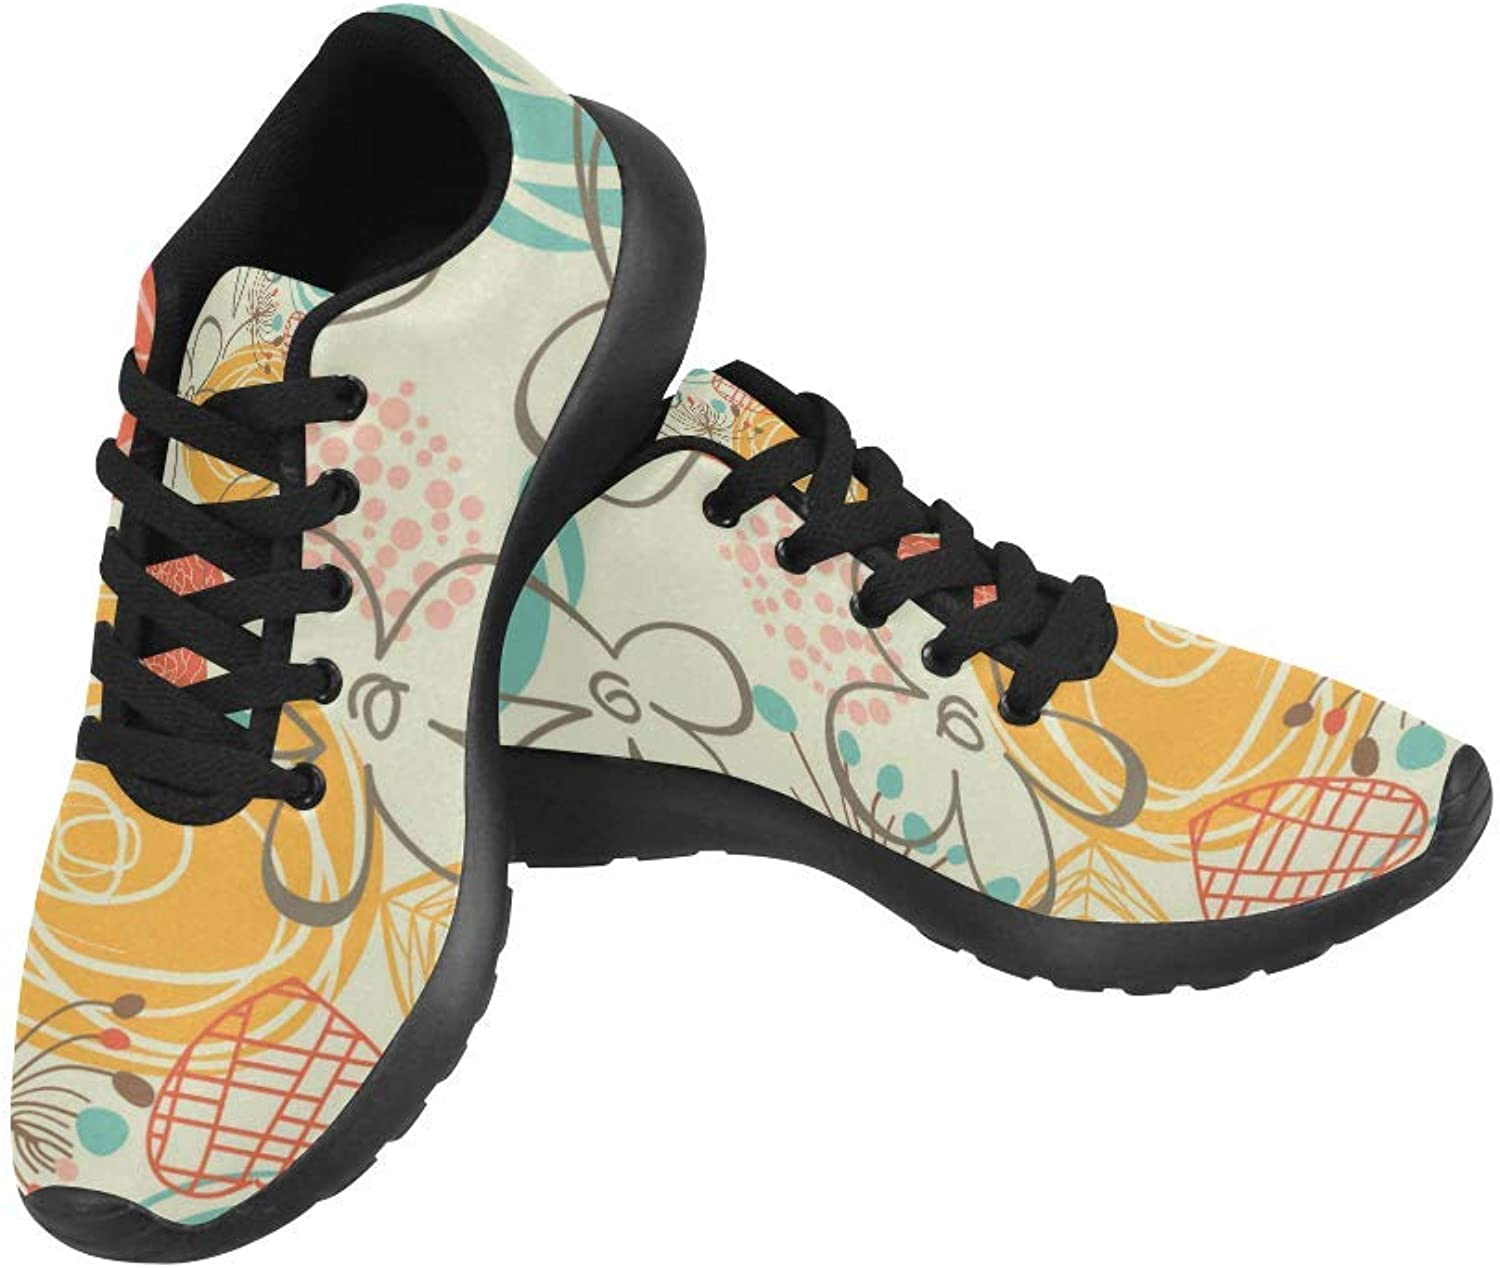 InterestPrint Retro Floral Pattern Print on Women's Running shoes Casual Lightweight Athletic Sneakers US Size 6-15